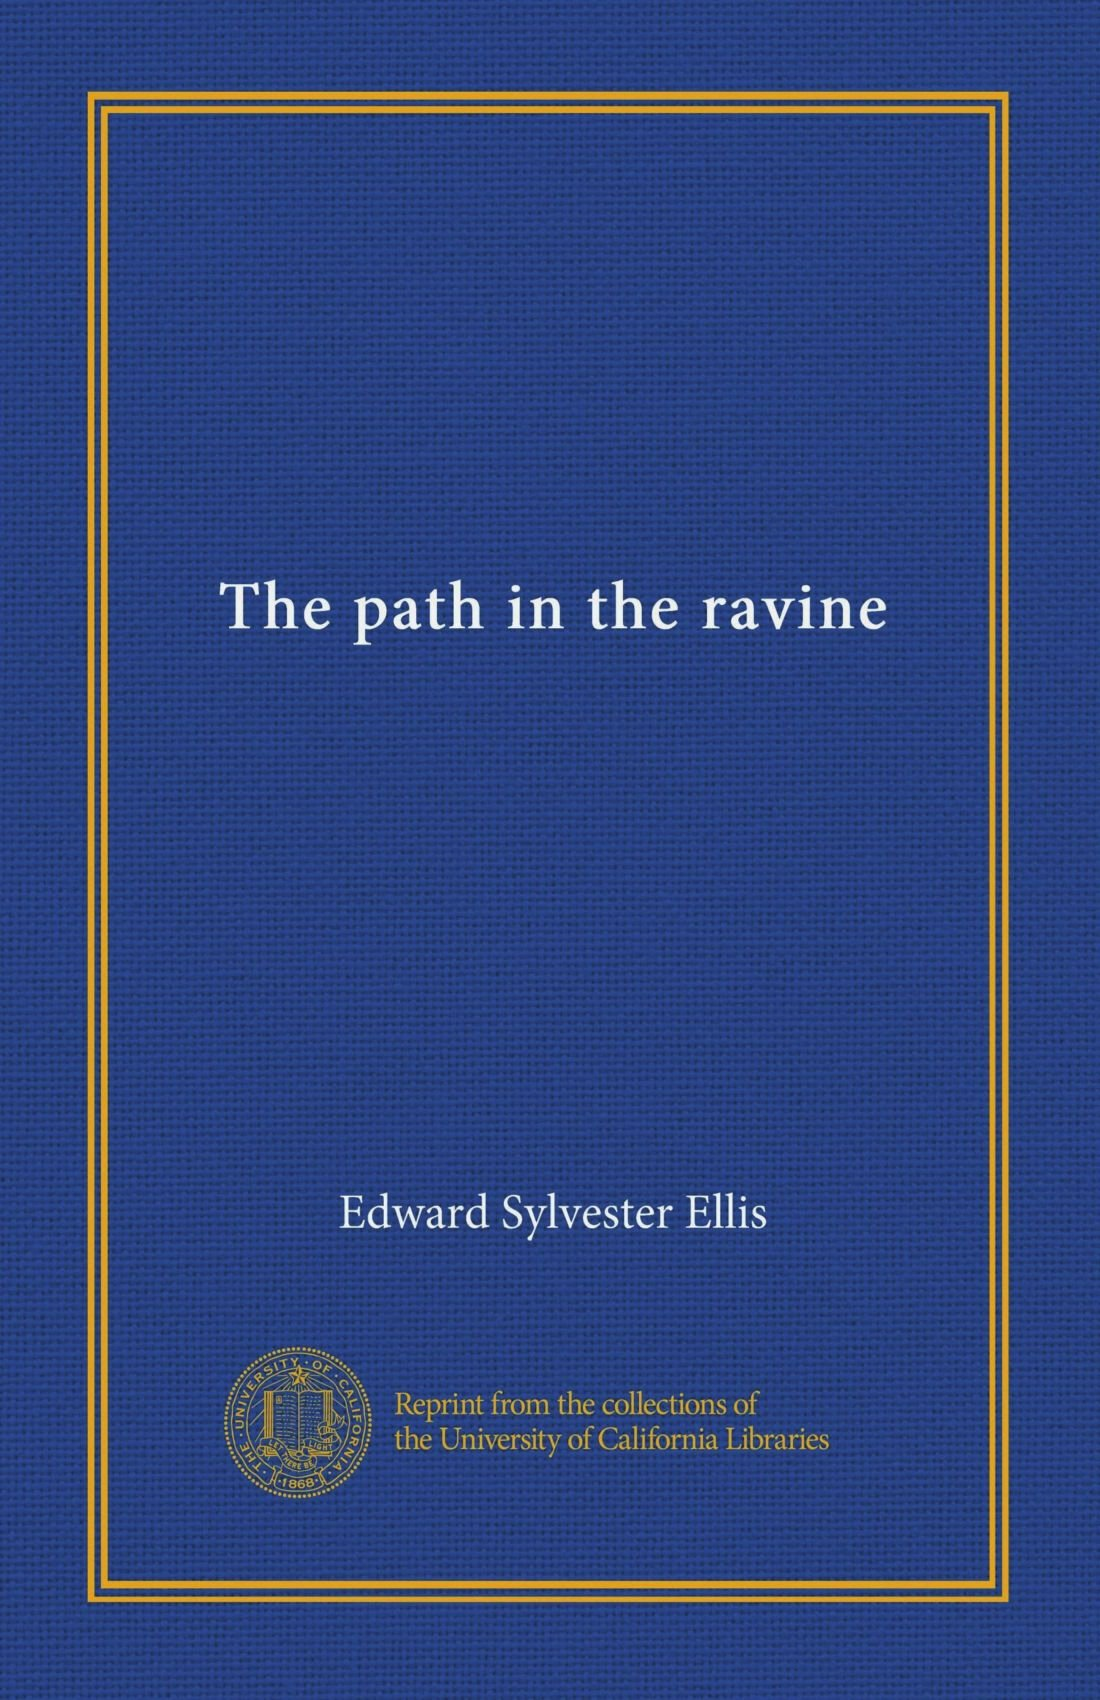 Download The path in the ravine ebook